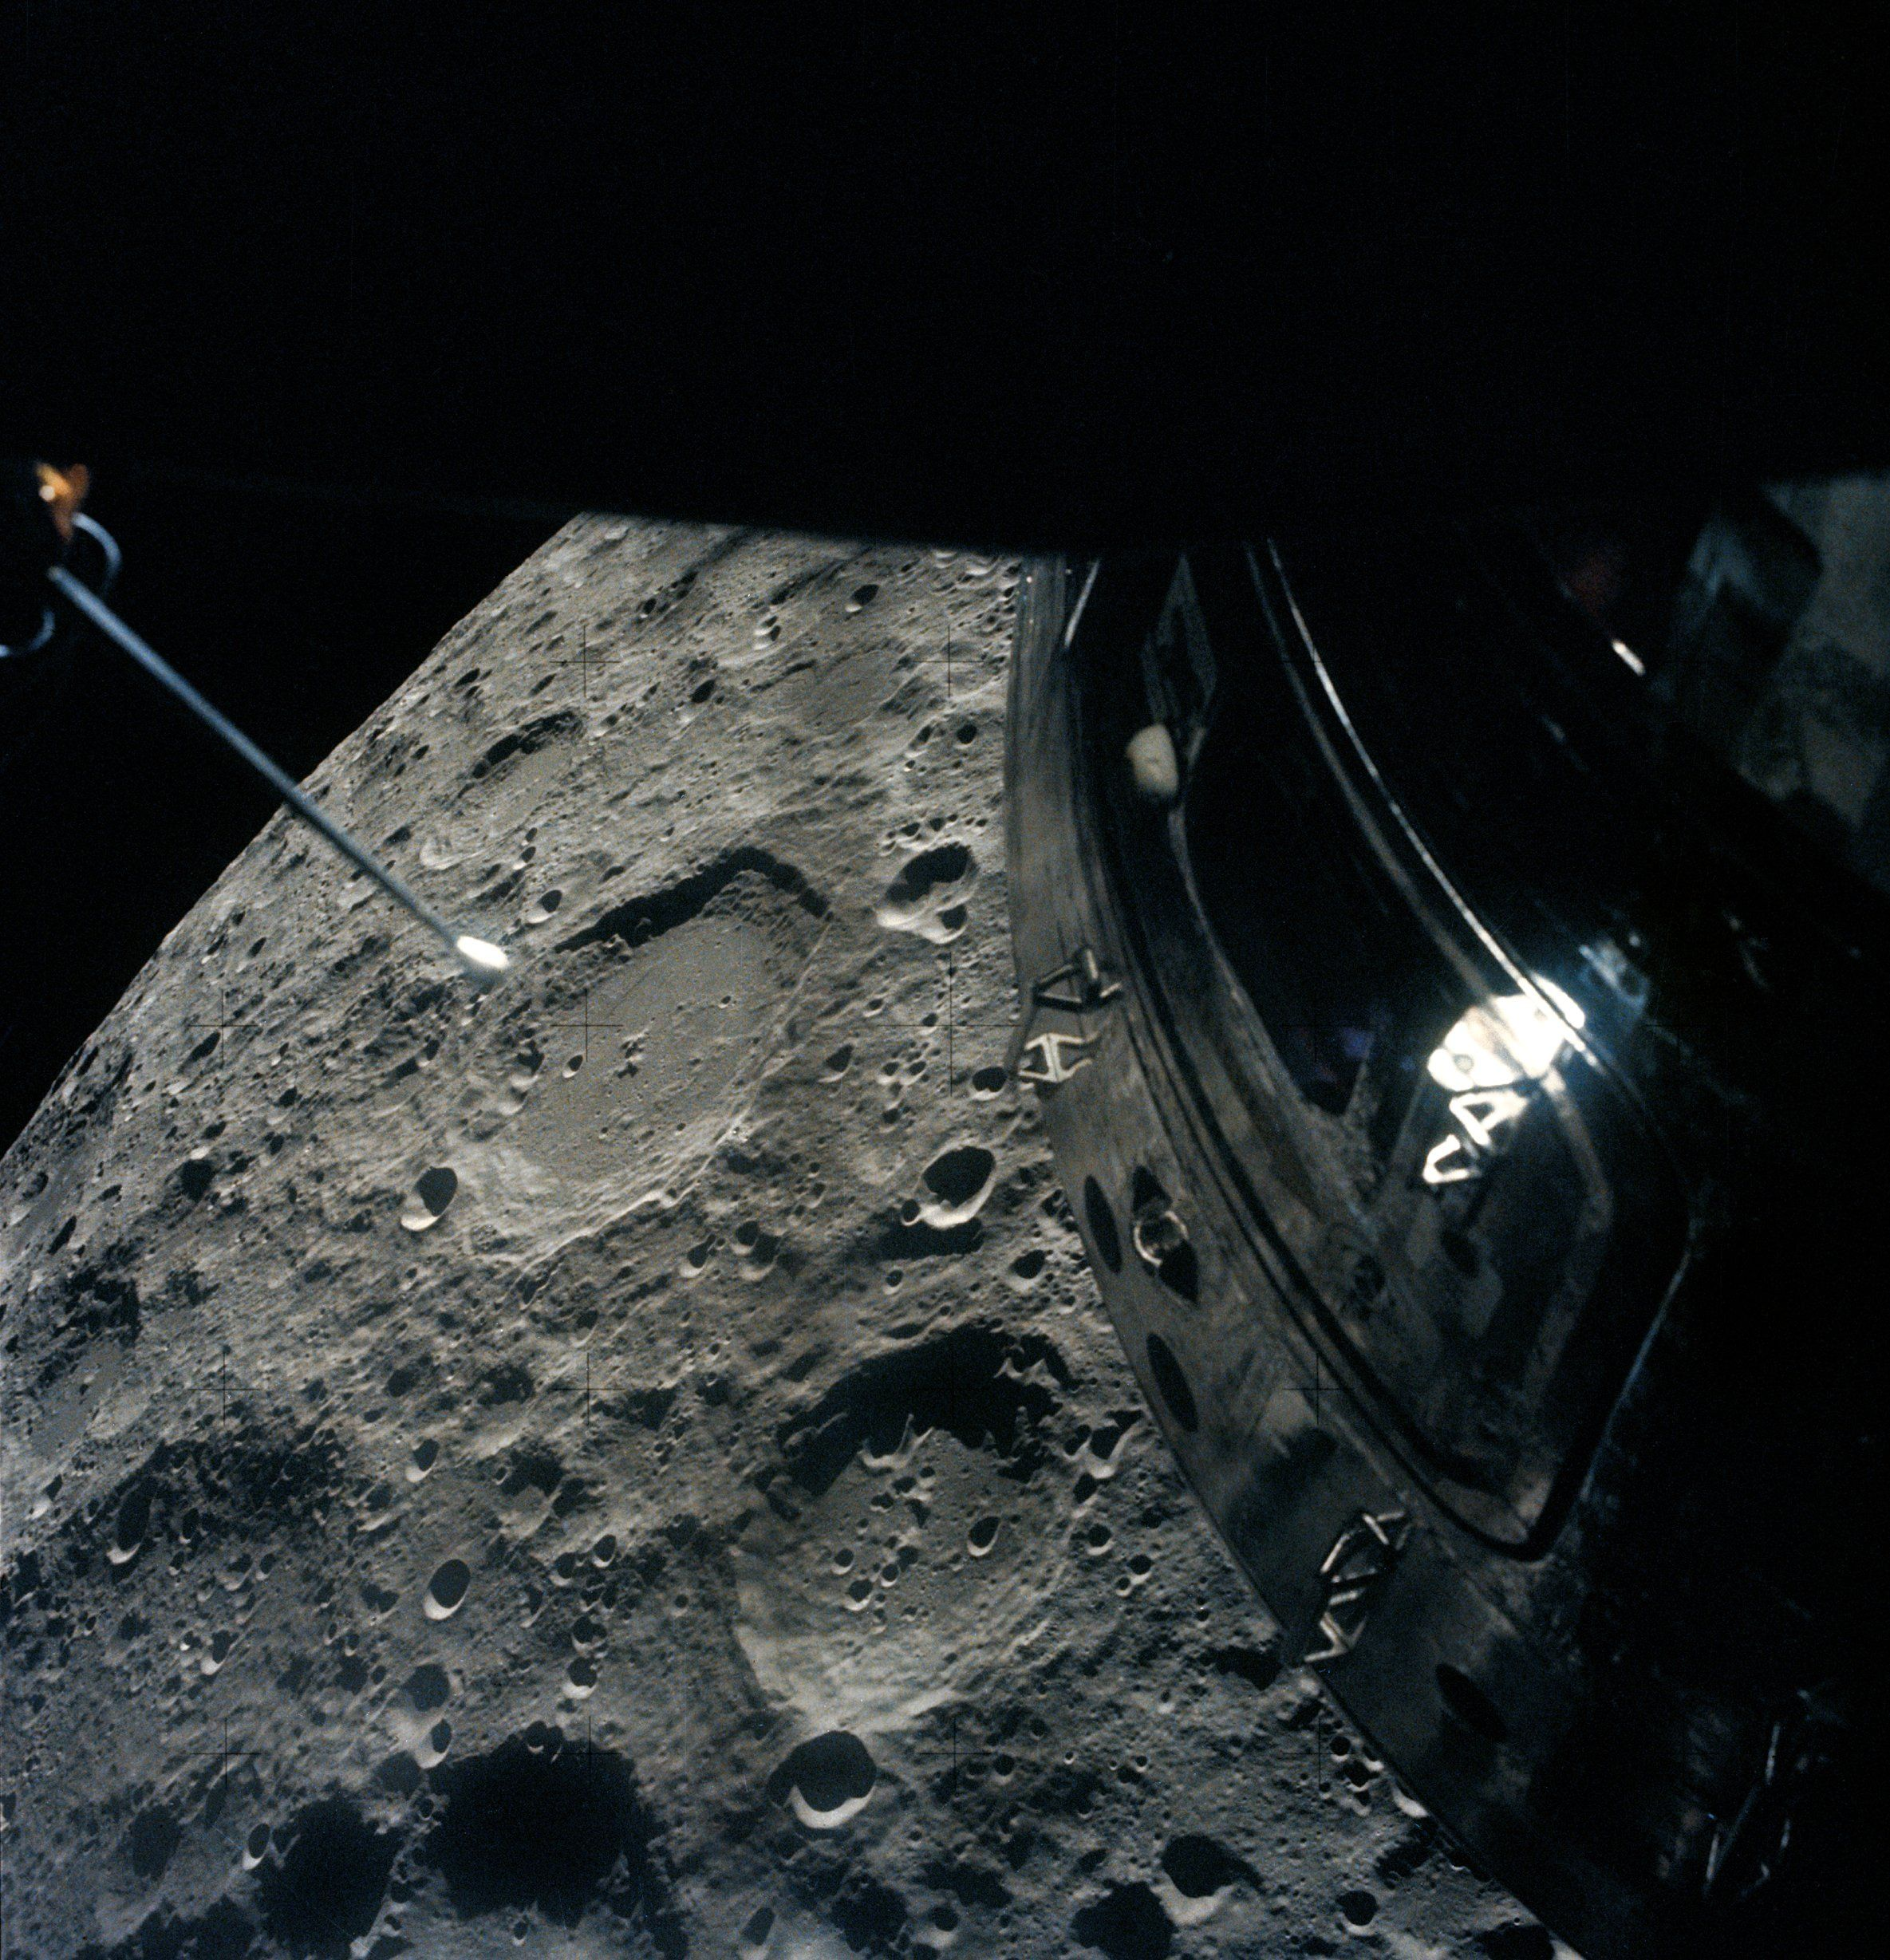 apollo 11 space mission timeline - photo #15